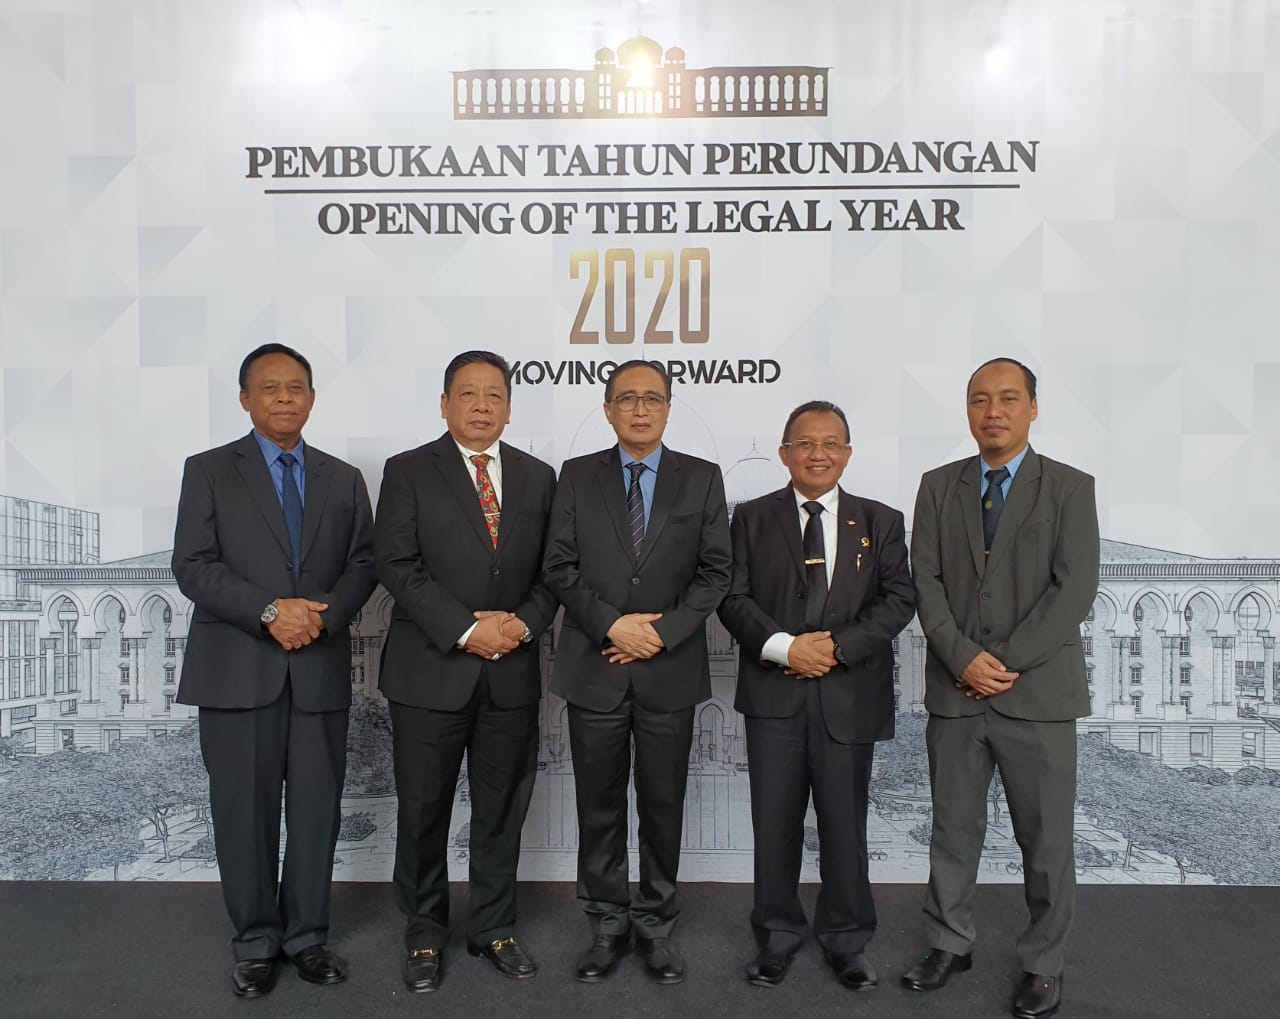 DELEGASI MA HADIRI OPENING OF THE LEGAL YEAR 2020 FEDERAL COURT OF MALAYSIA